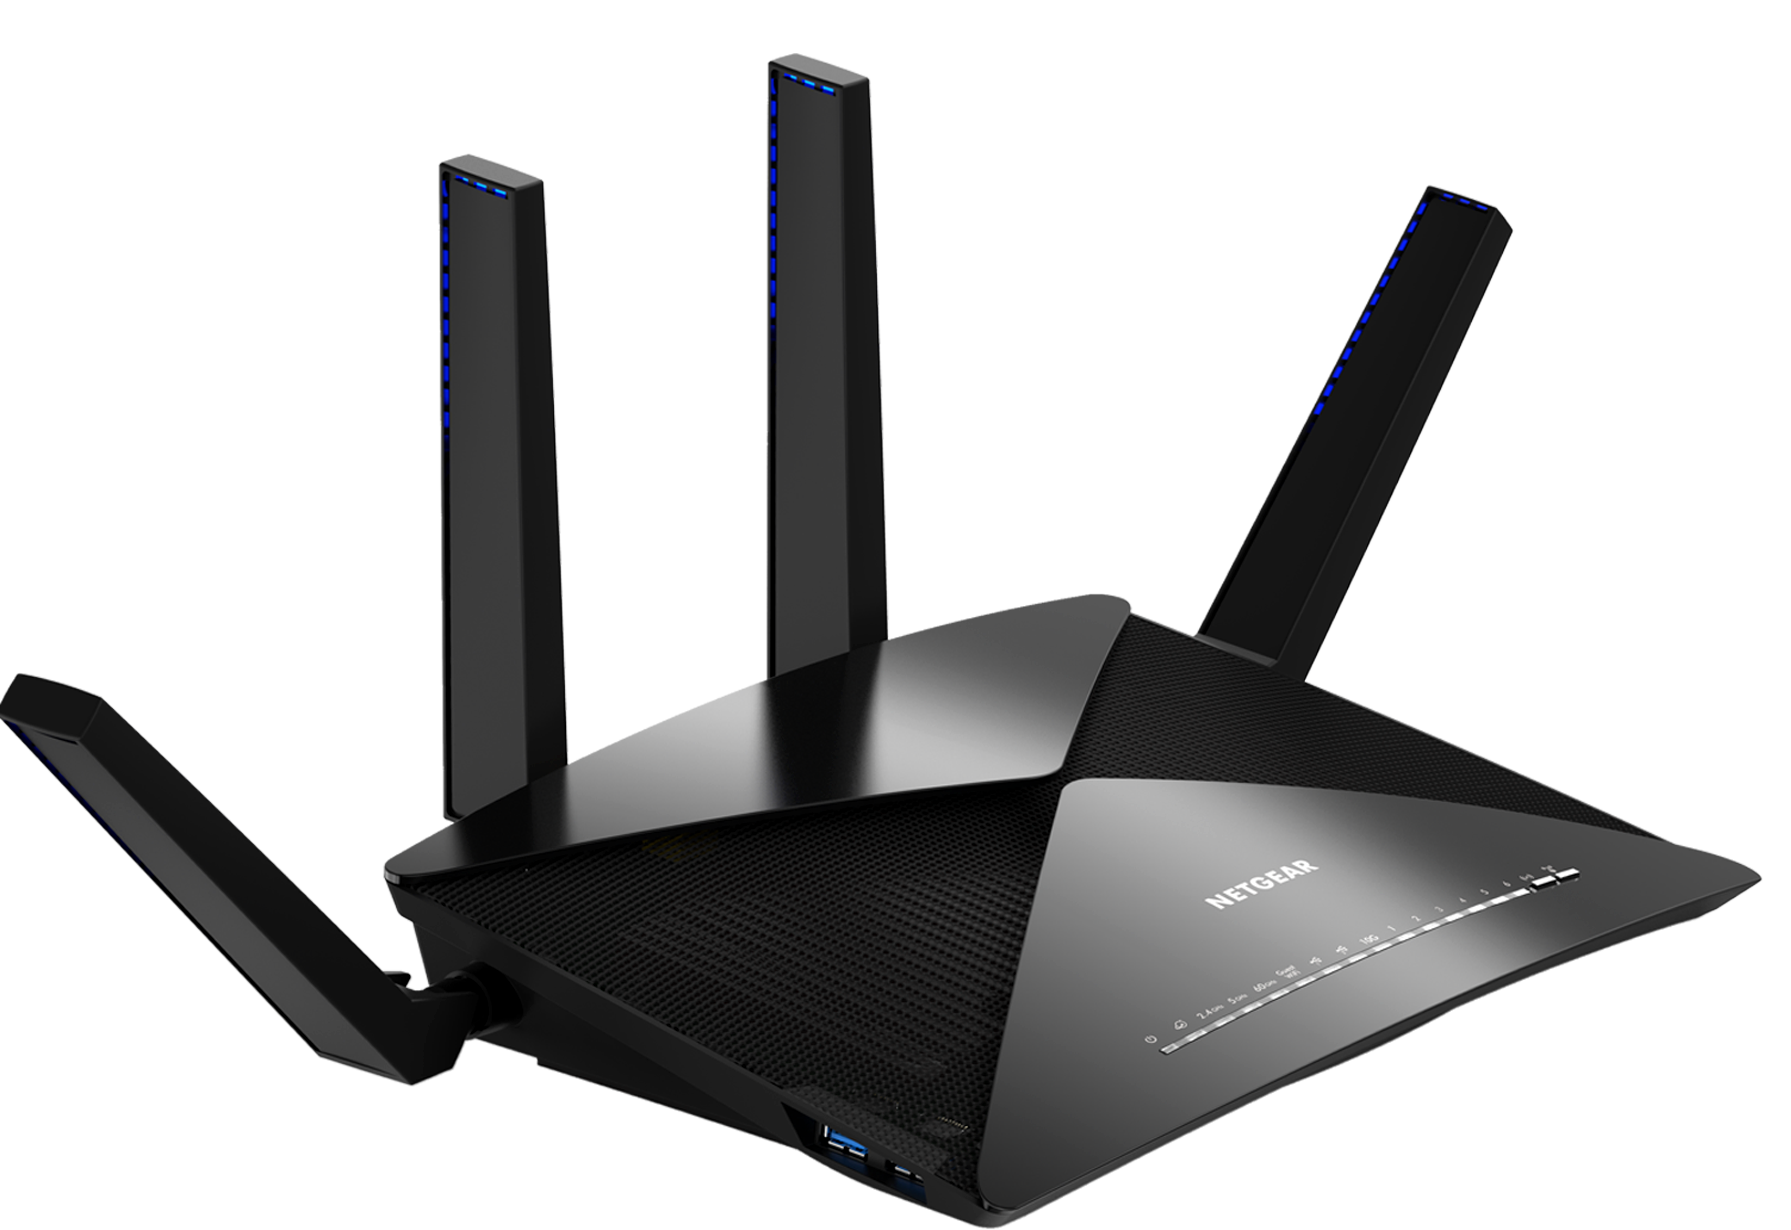 Nighthawk X10 R9000 Smart WiFi Router